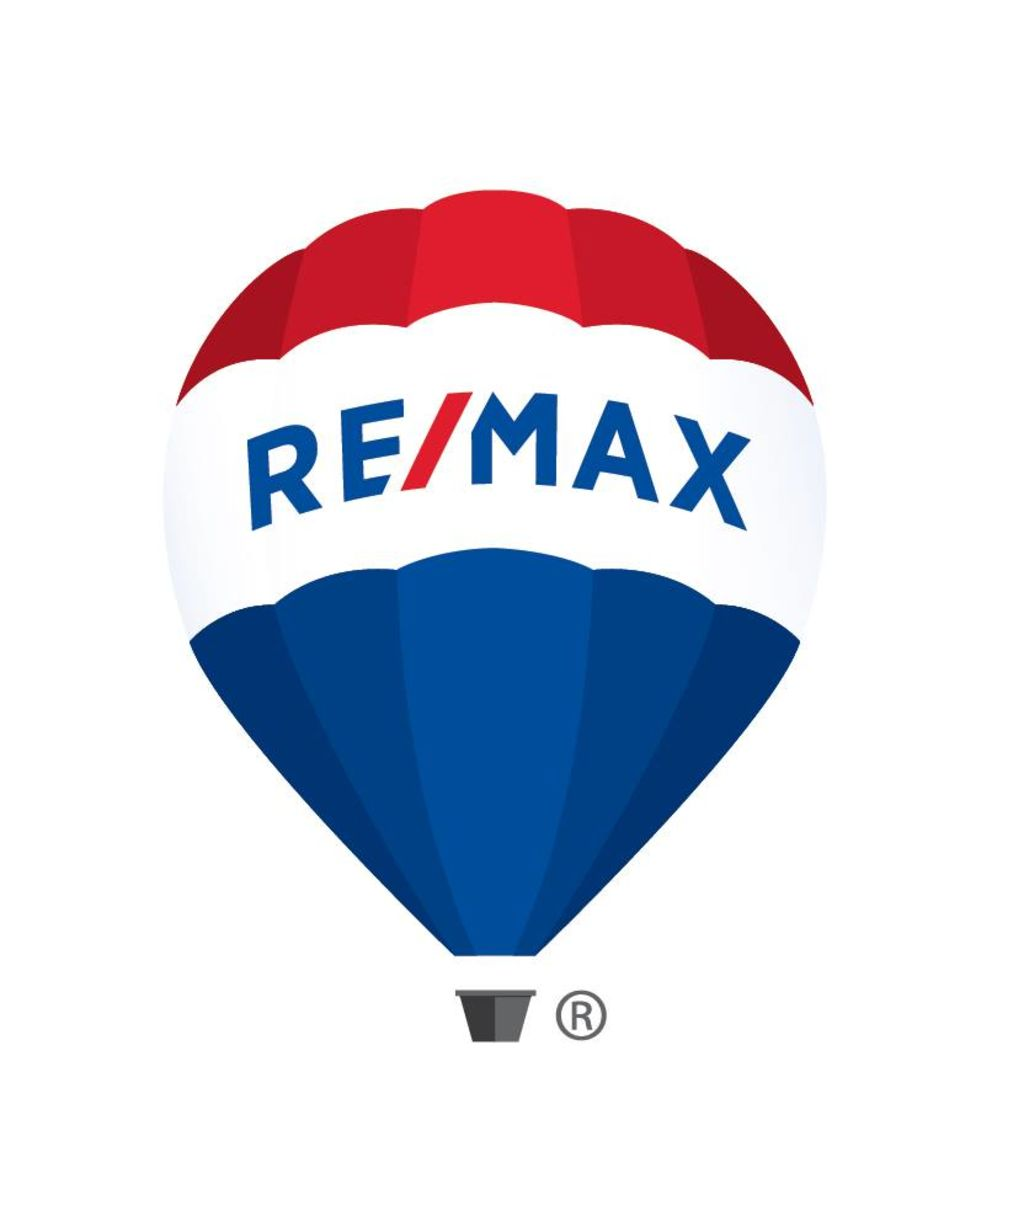 RE/MAX Ability Plus Susan Lehmann Broker